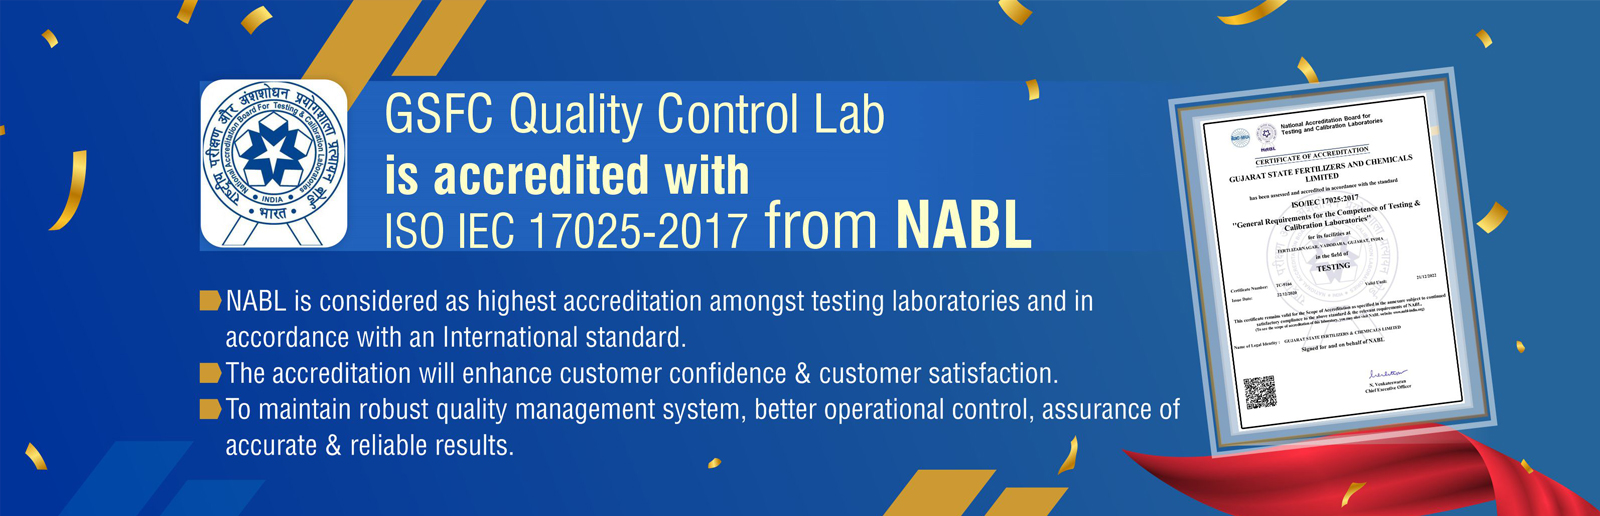 GSFC Quality Control Lab is Accredited with ISO IEC 17025-2017 from NABL